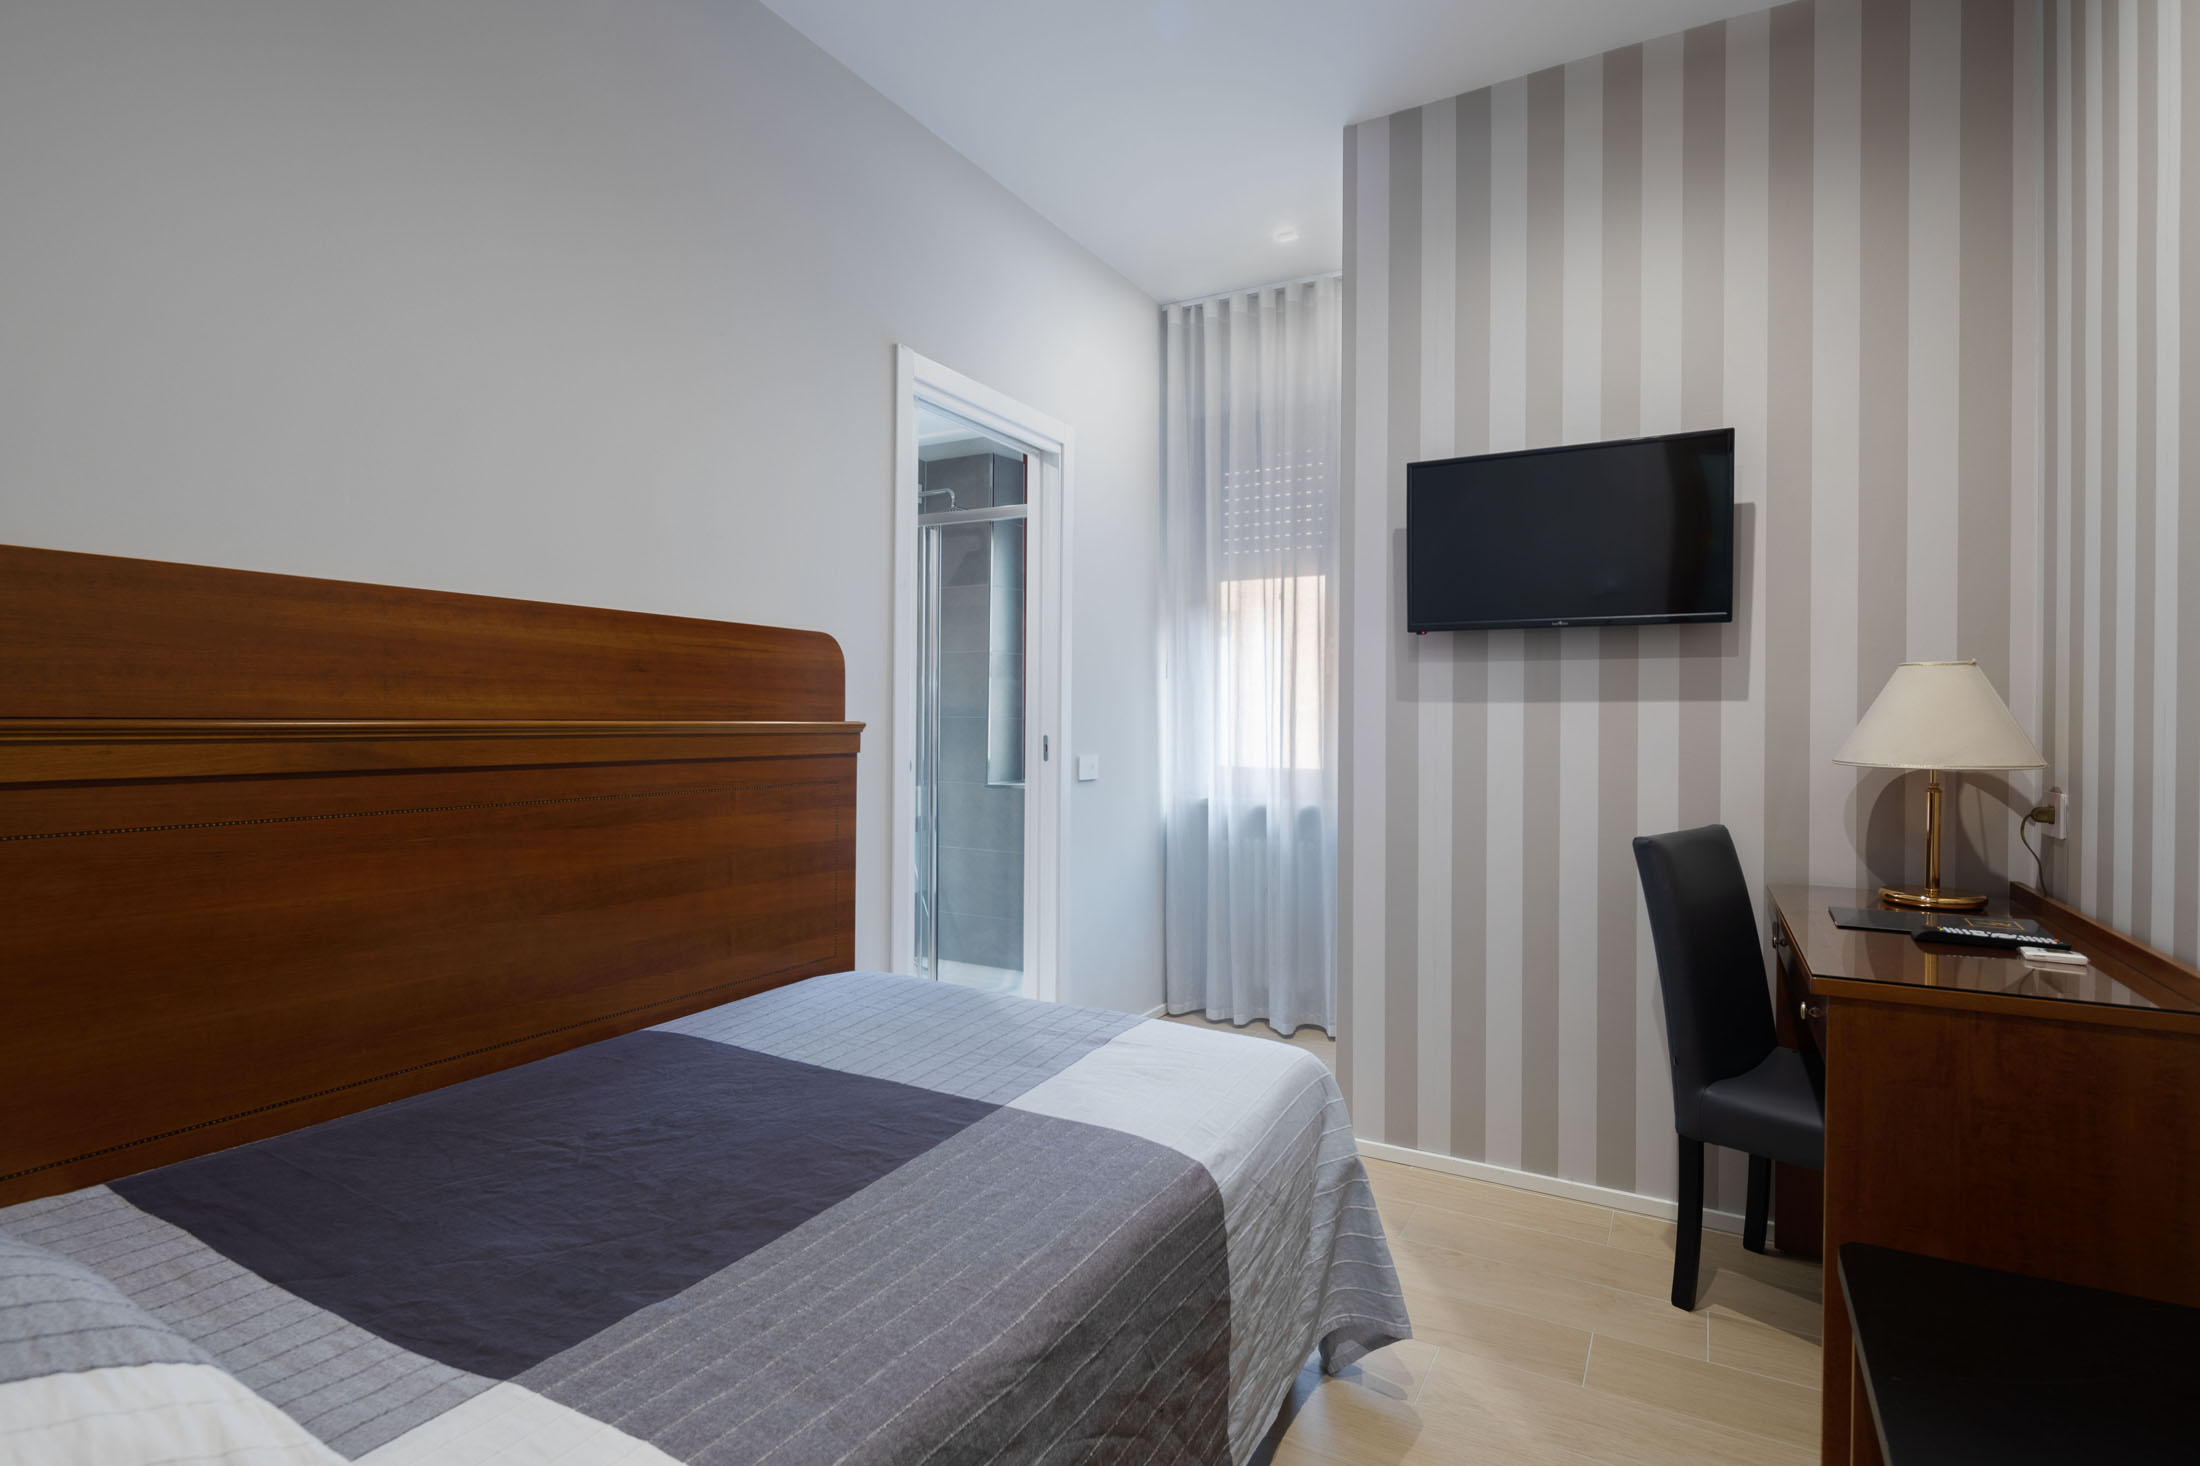 https://www.in-lombardia.it/sites/default/files/accomodation/gallery/105682/37621/excelsior_pavia_15.jpg